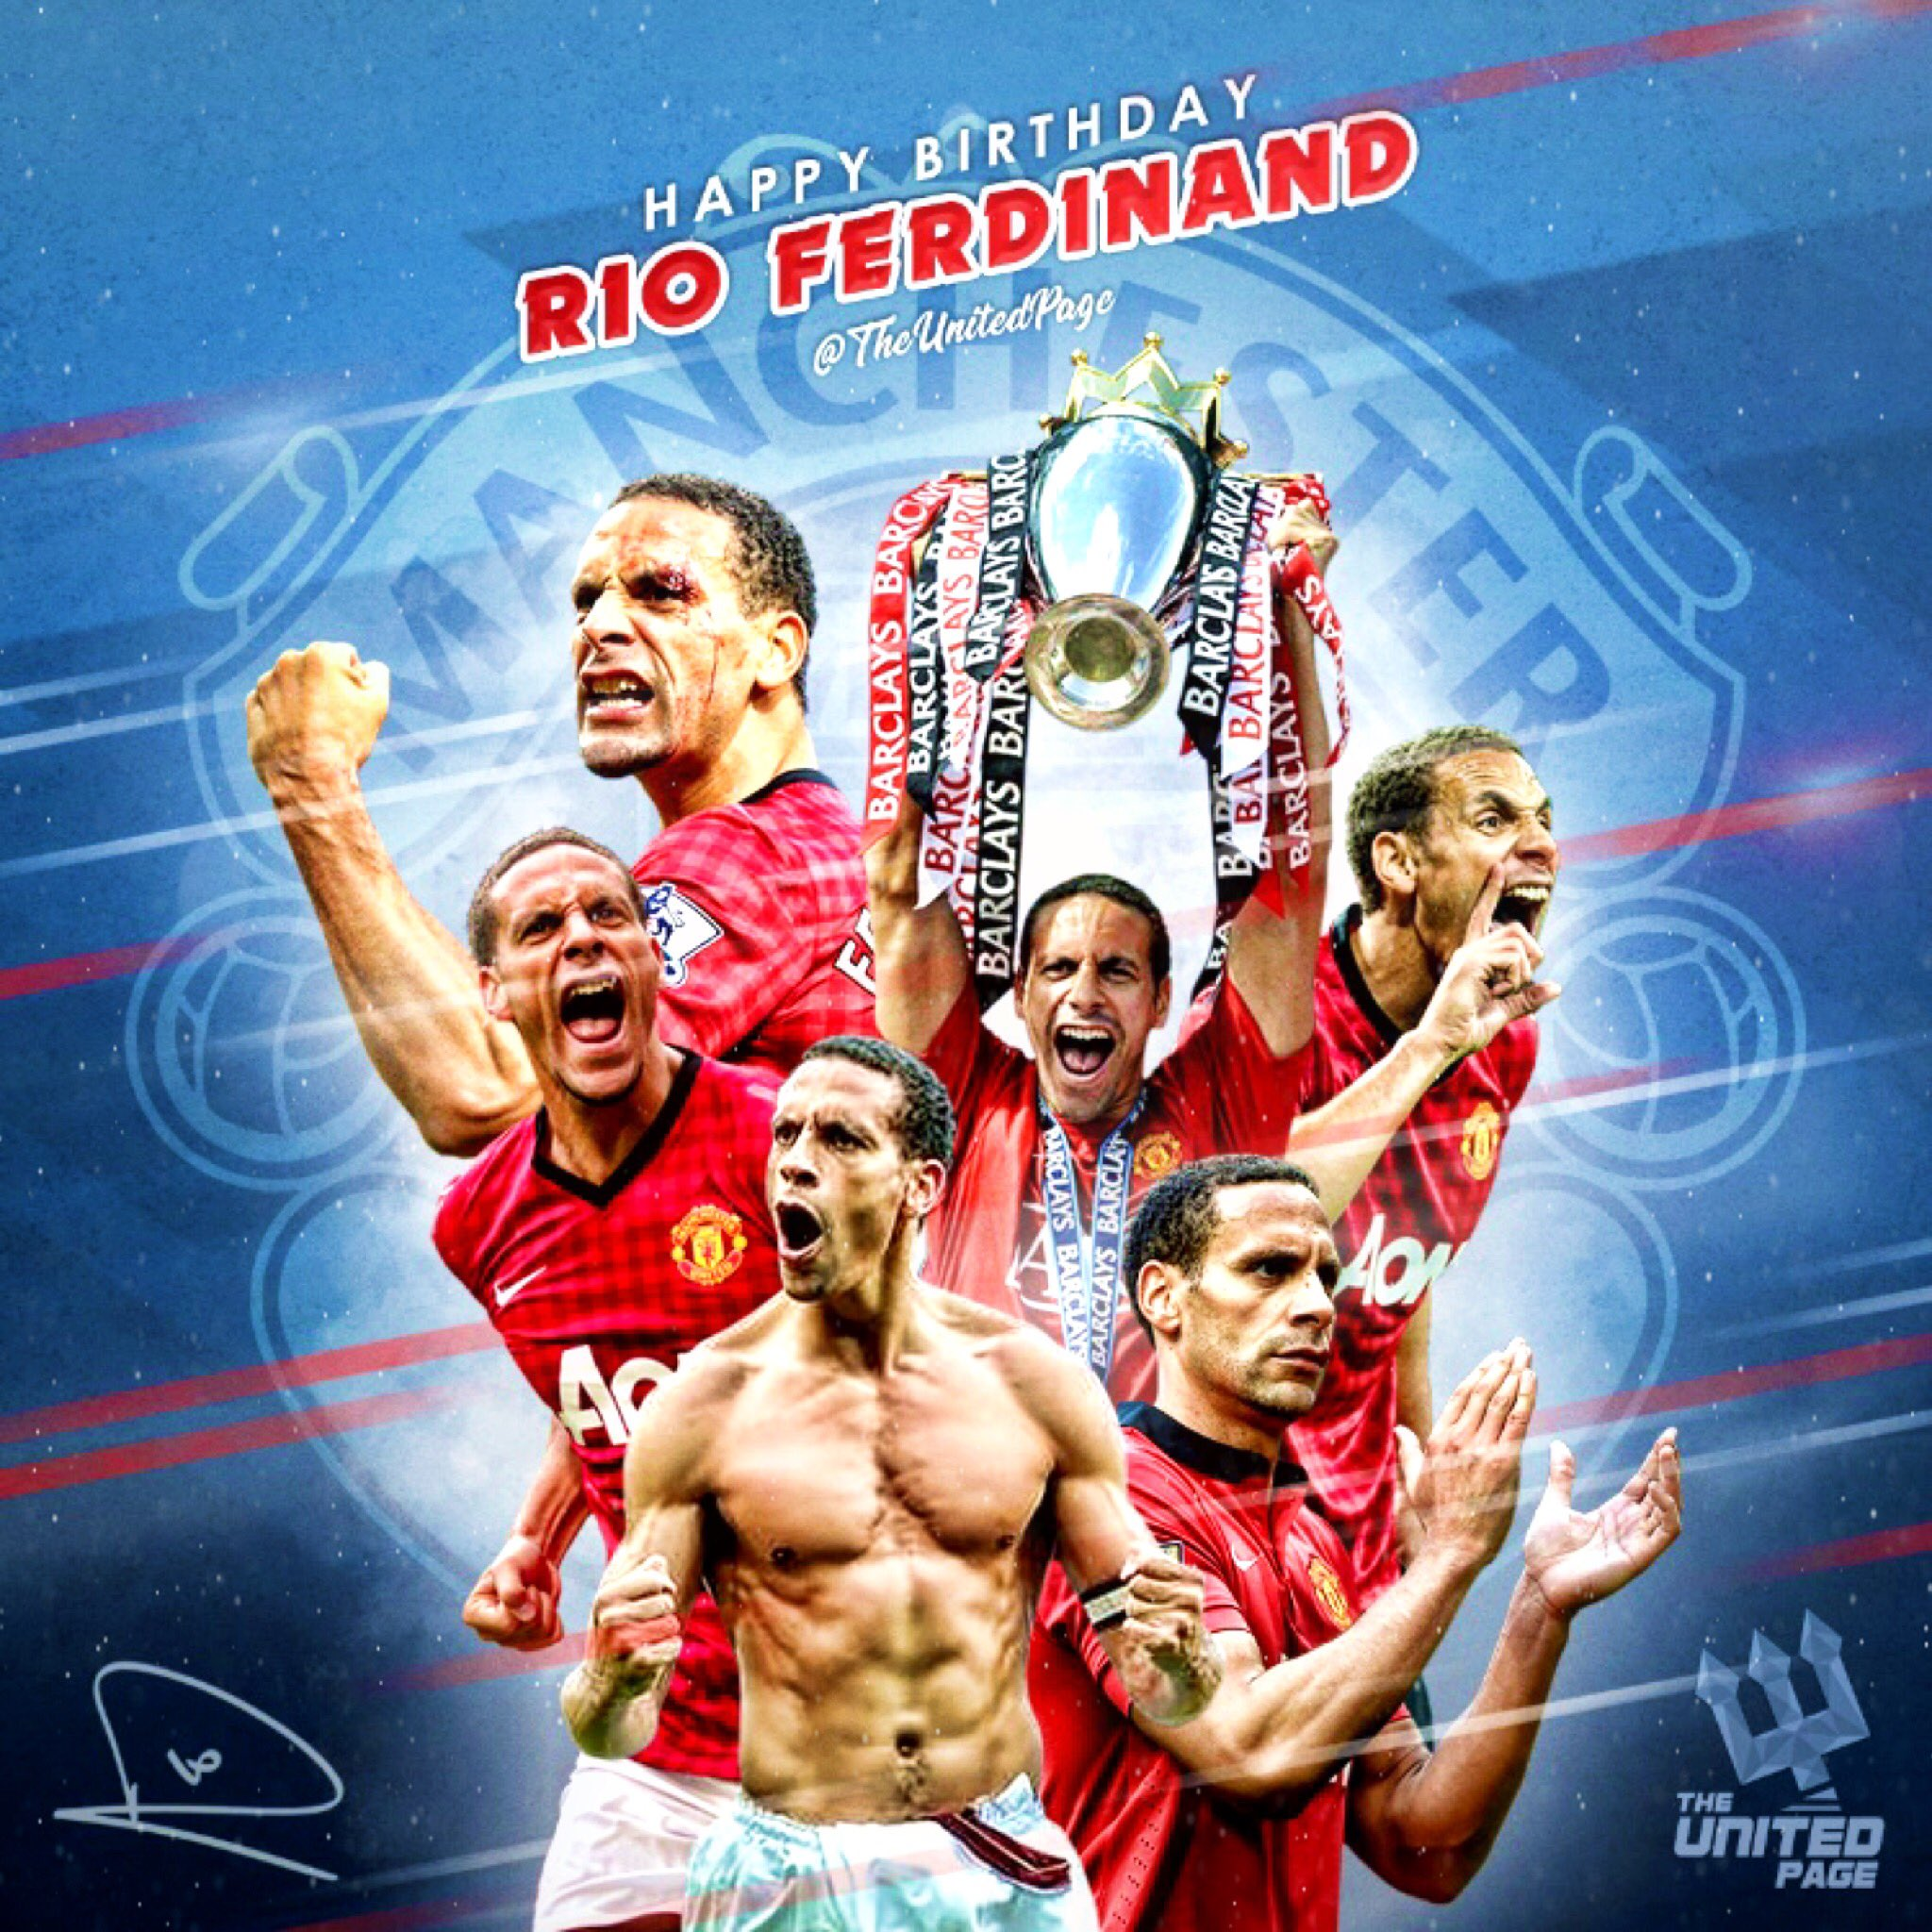 Happy 40th birthday to the legend that is Rio Ferdinand!